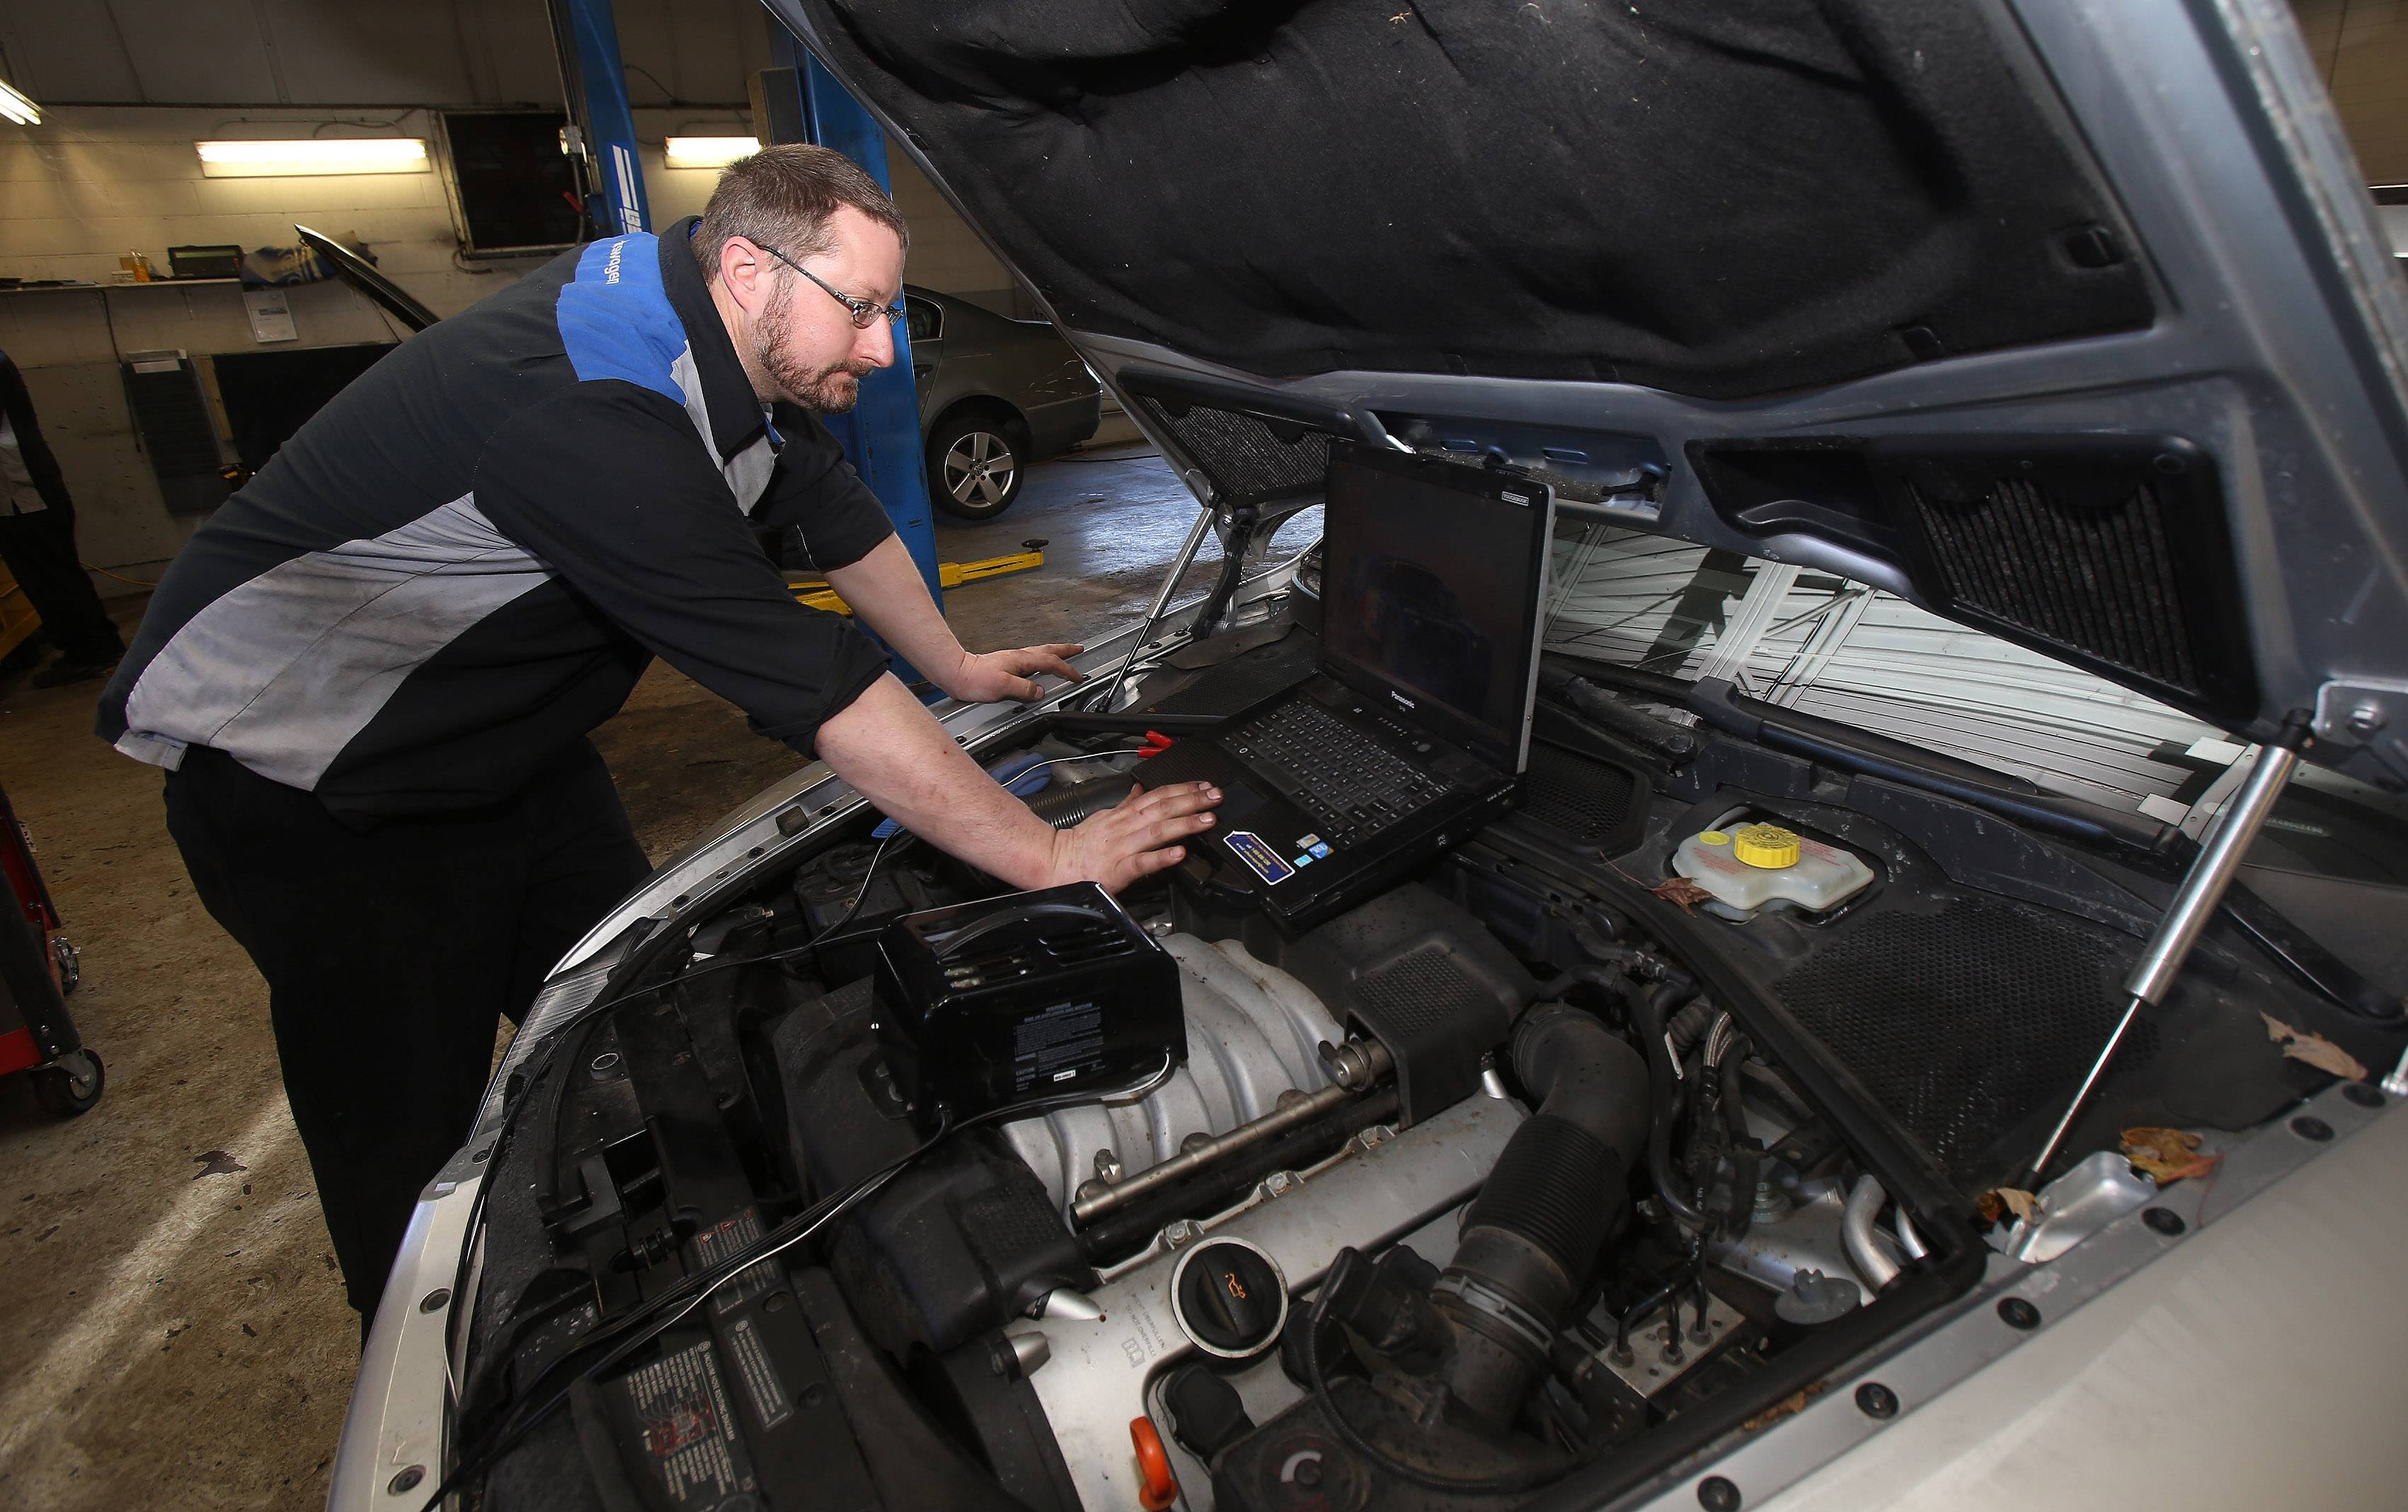 Master technician Dave Wiegel checks the diagnostics on a car in the service department of Muller Auto Group in Highland Park.